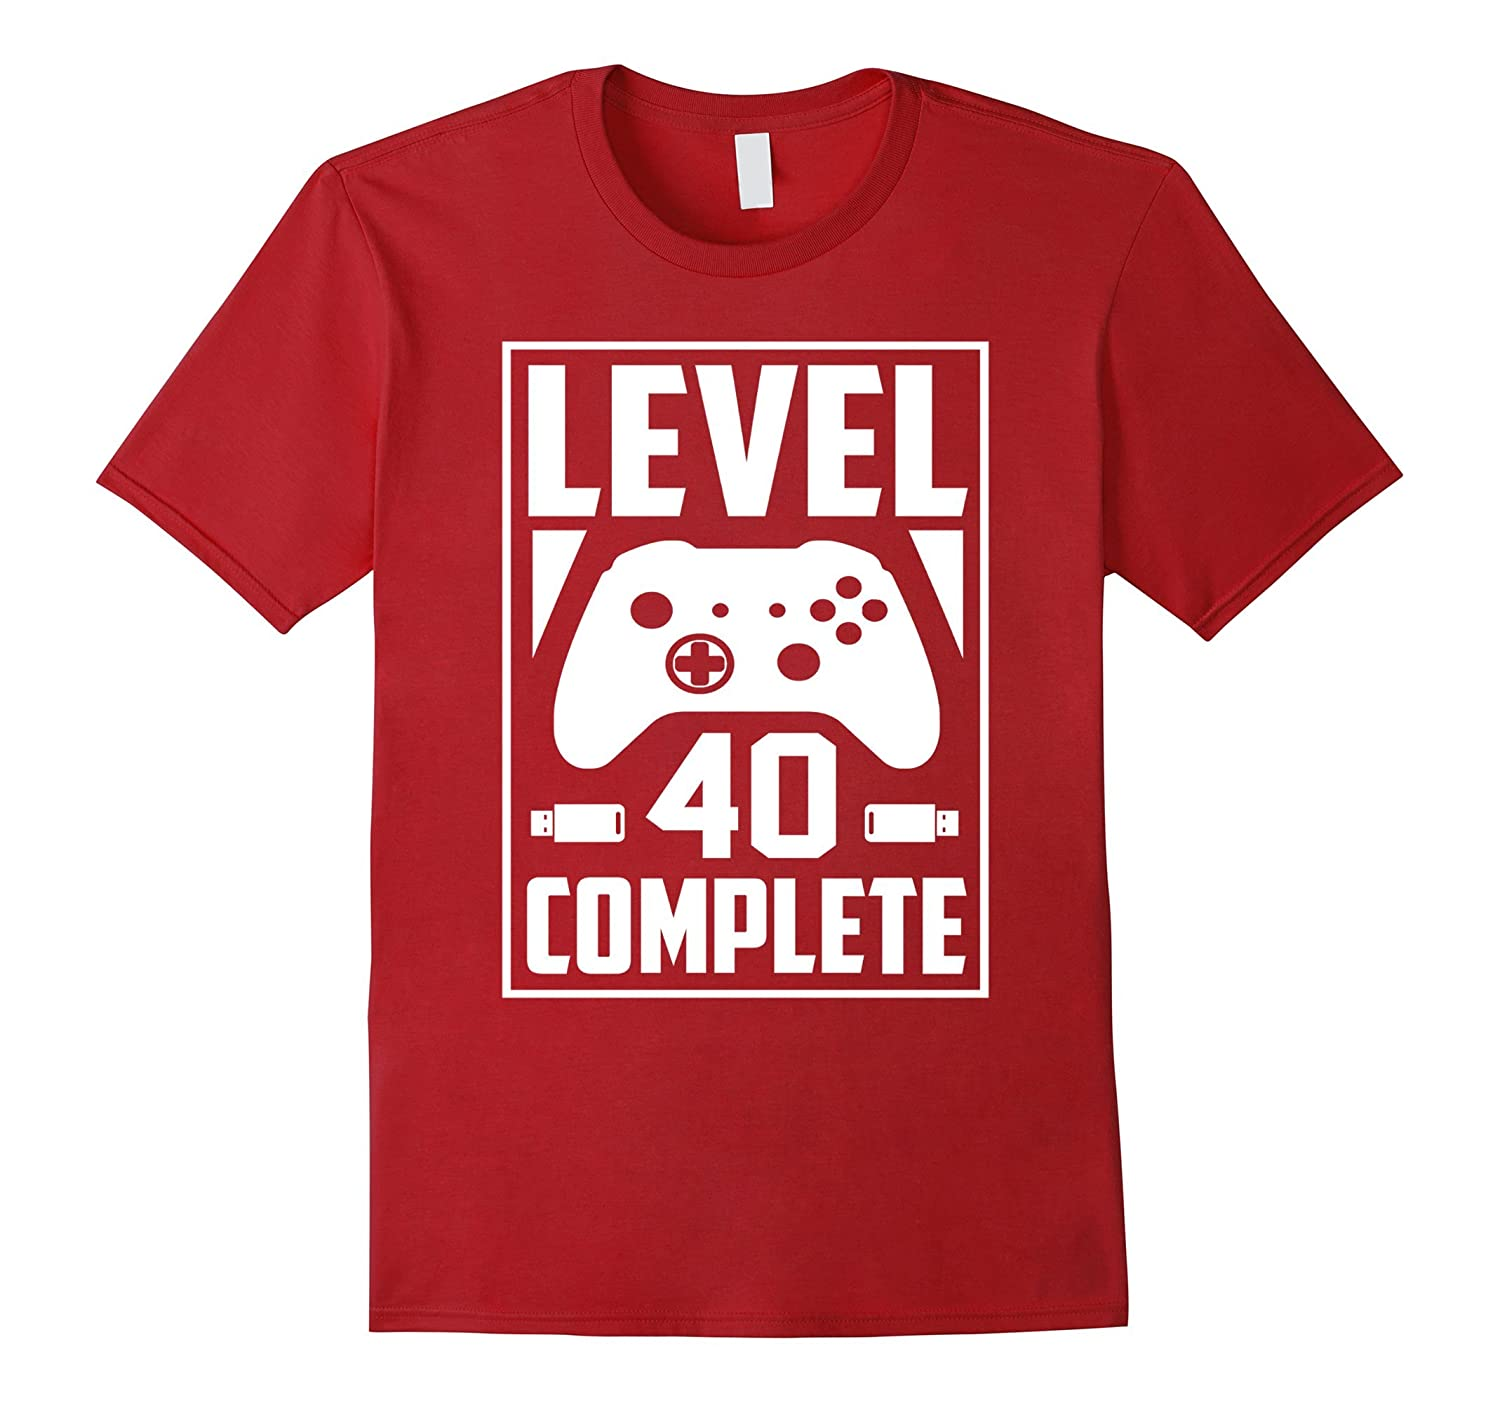 e35d3698 Level 40 Complete Video Gamer Geek 40th Birthday Gift Shirt-BN ...